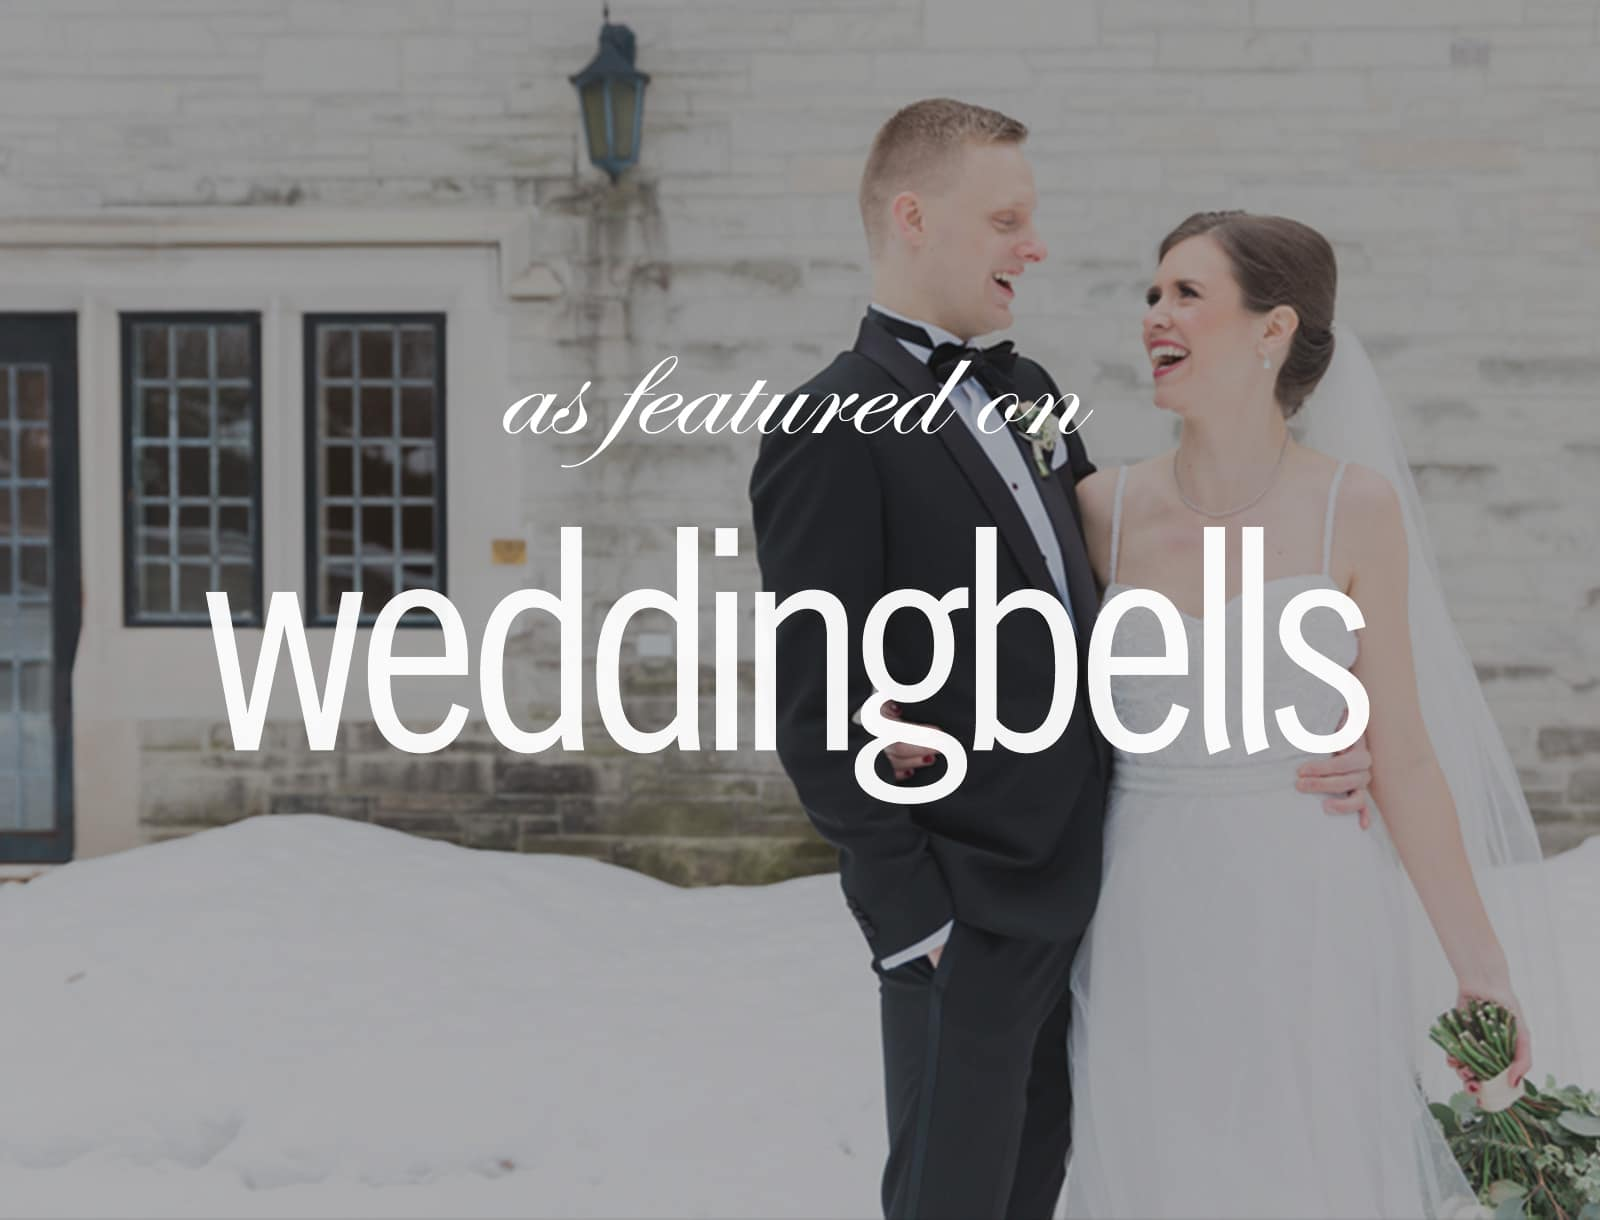 Featured on Weddingbells: Art Deco New Year's Eve Wedding